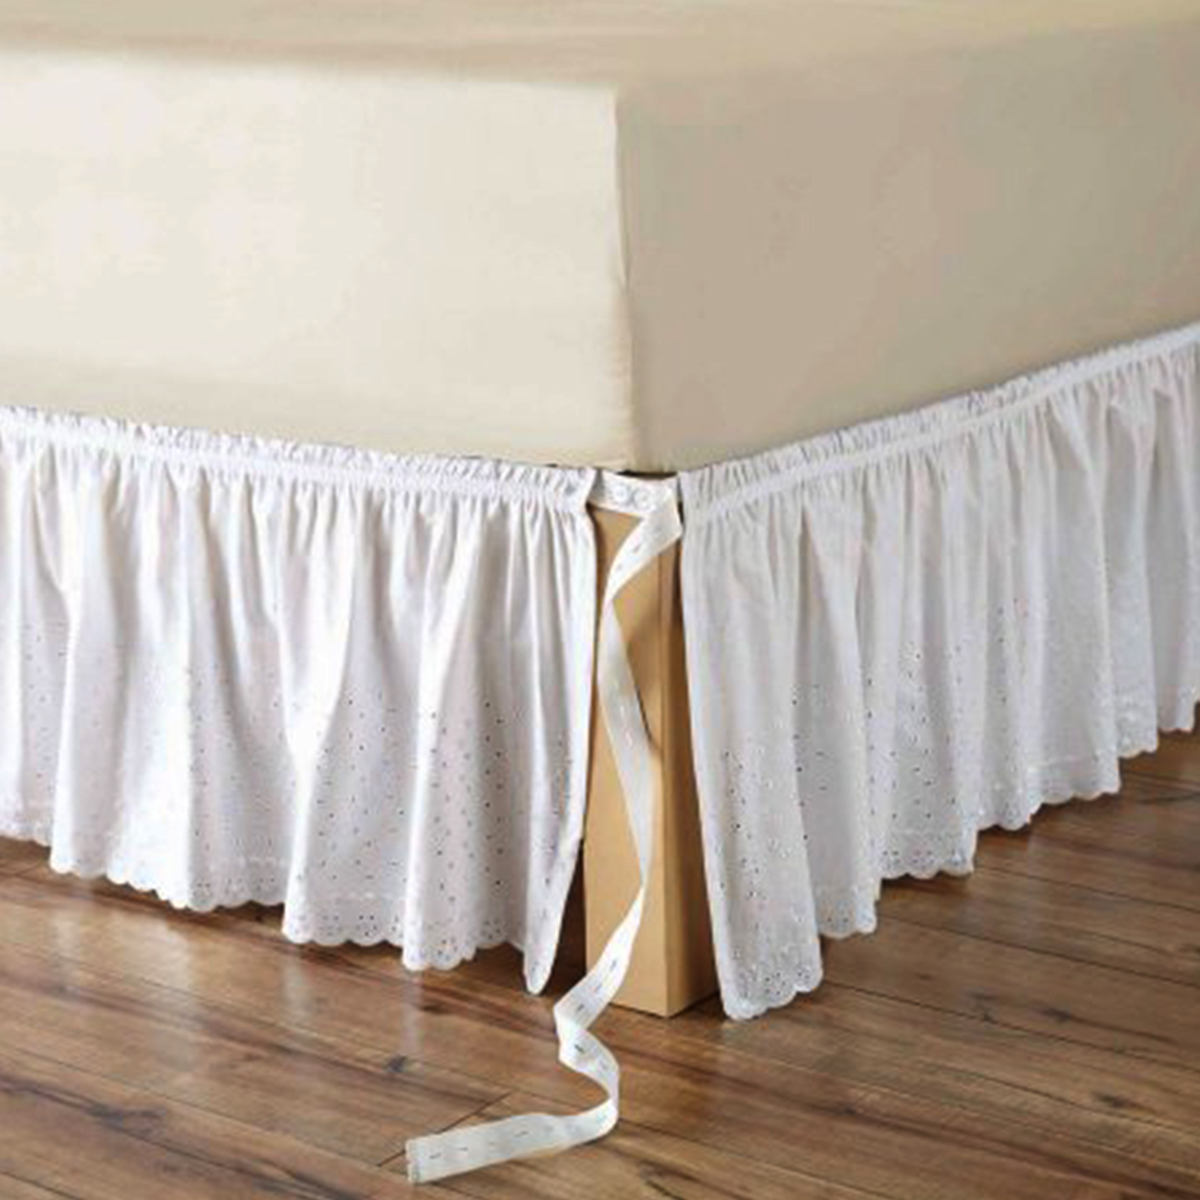 Better Homes and Gardens white eyelet adjustable bed skirt from Walmart photo